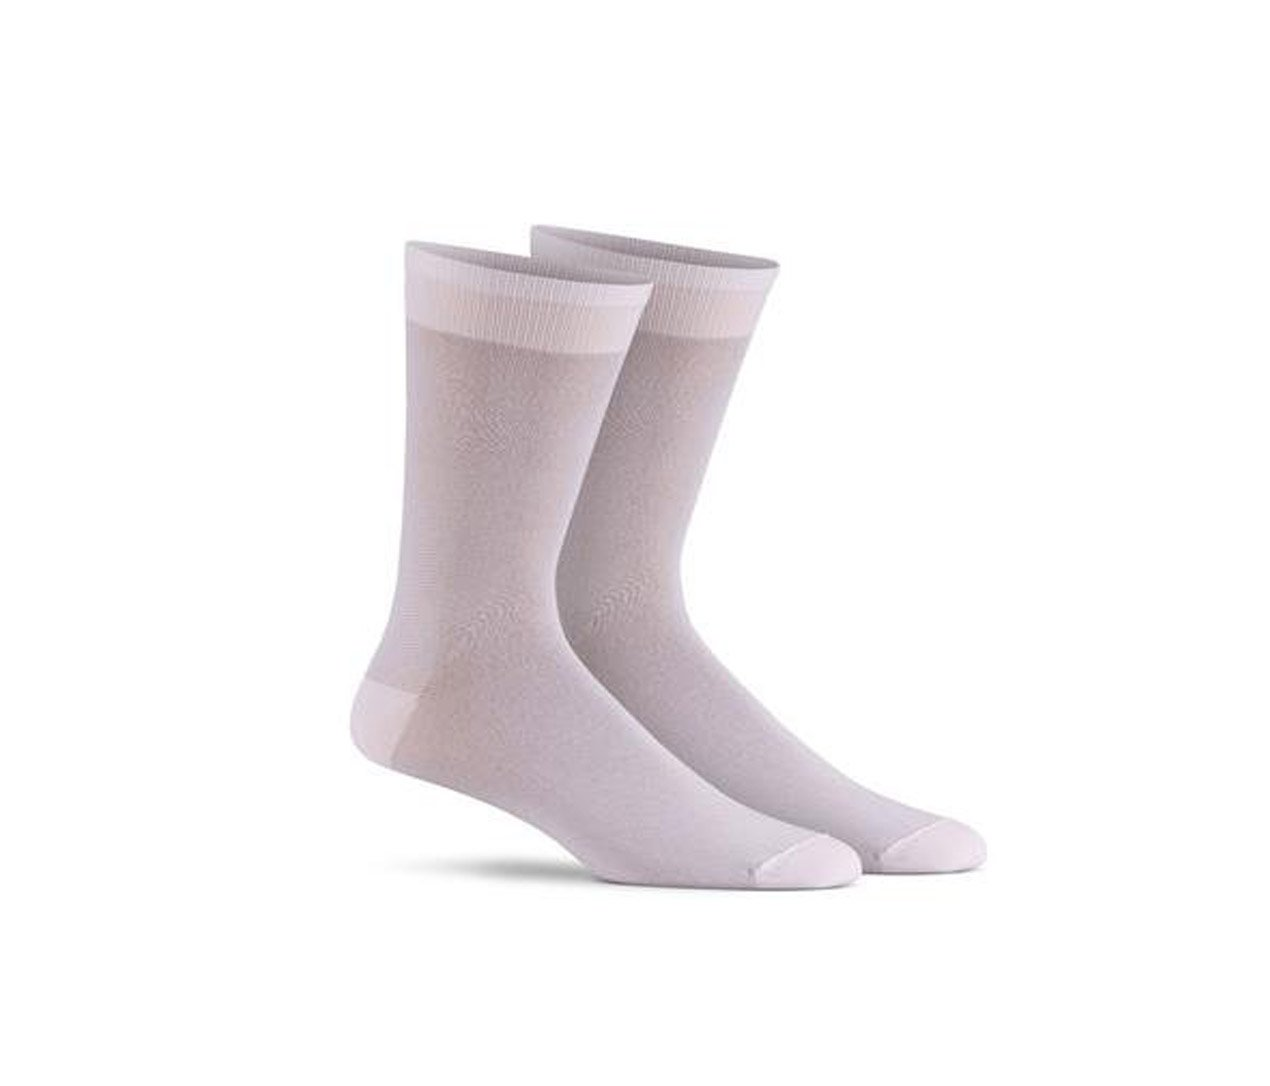 Fox River Mills X-Static Liner Sock - Silver, X-Large - 3 Pack by FoxRiver